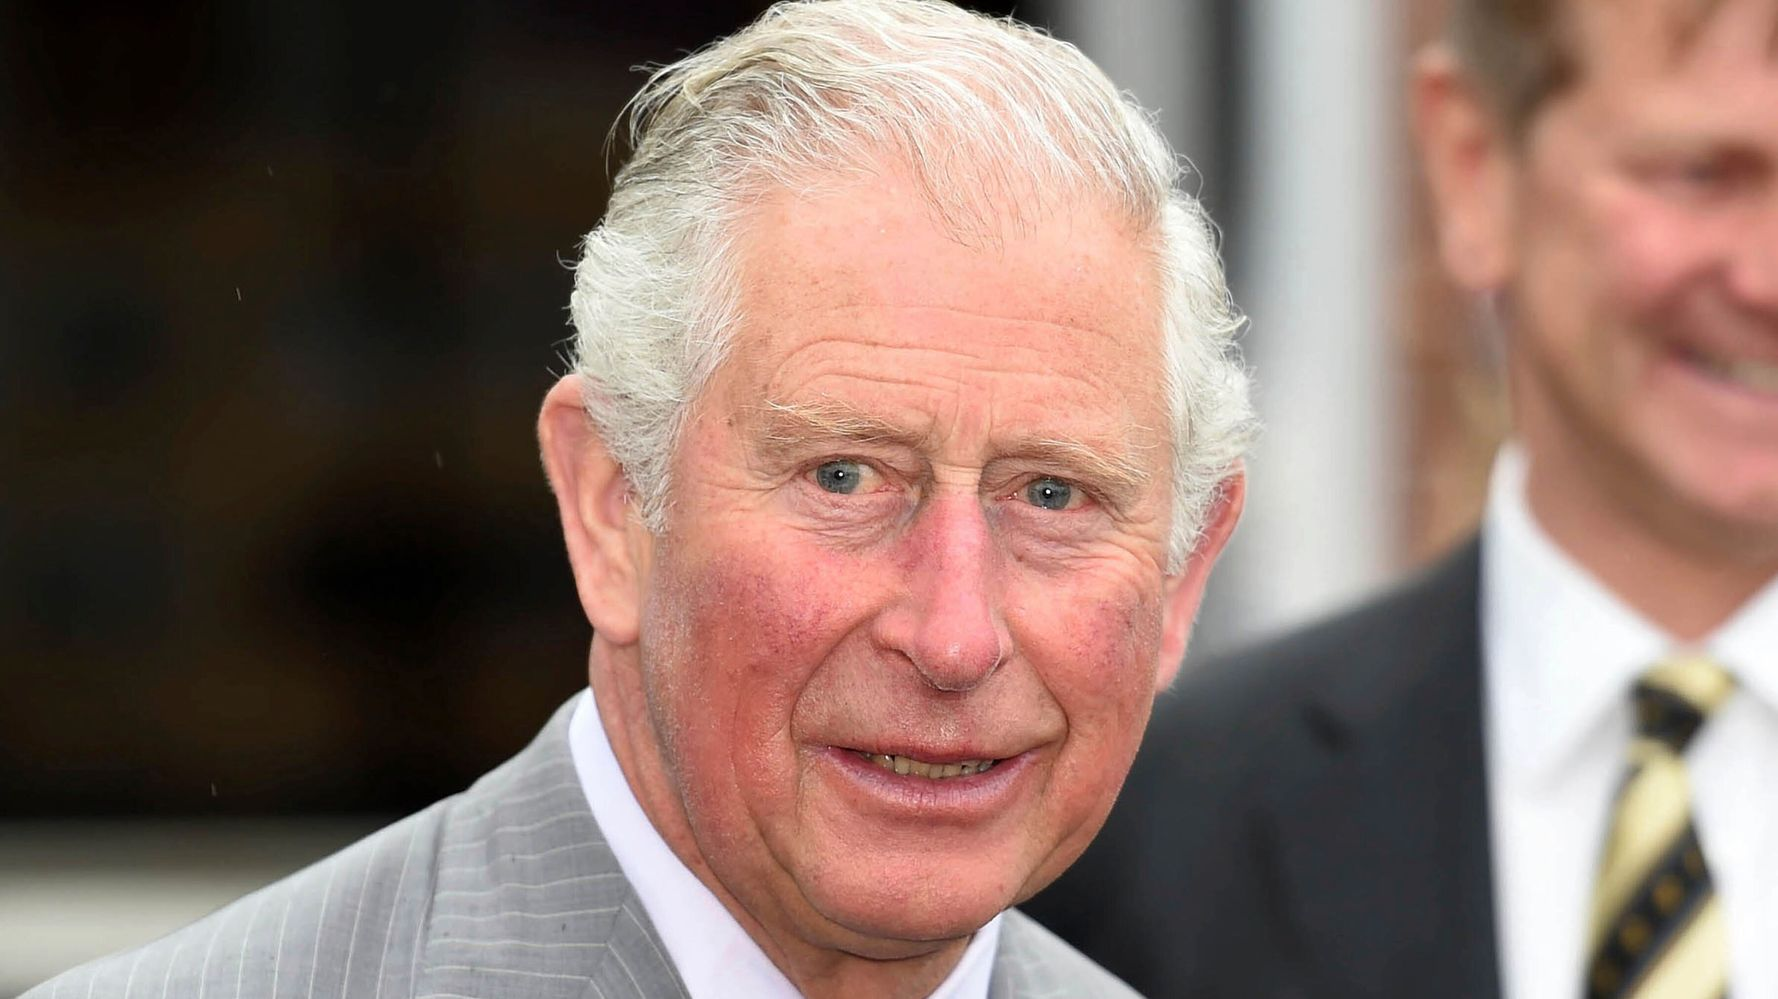 Prince Charles Breaks Silence After Coronavirus Diagnosis With Hope-Filled Video Message